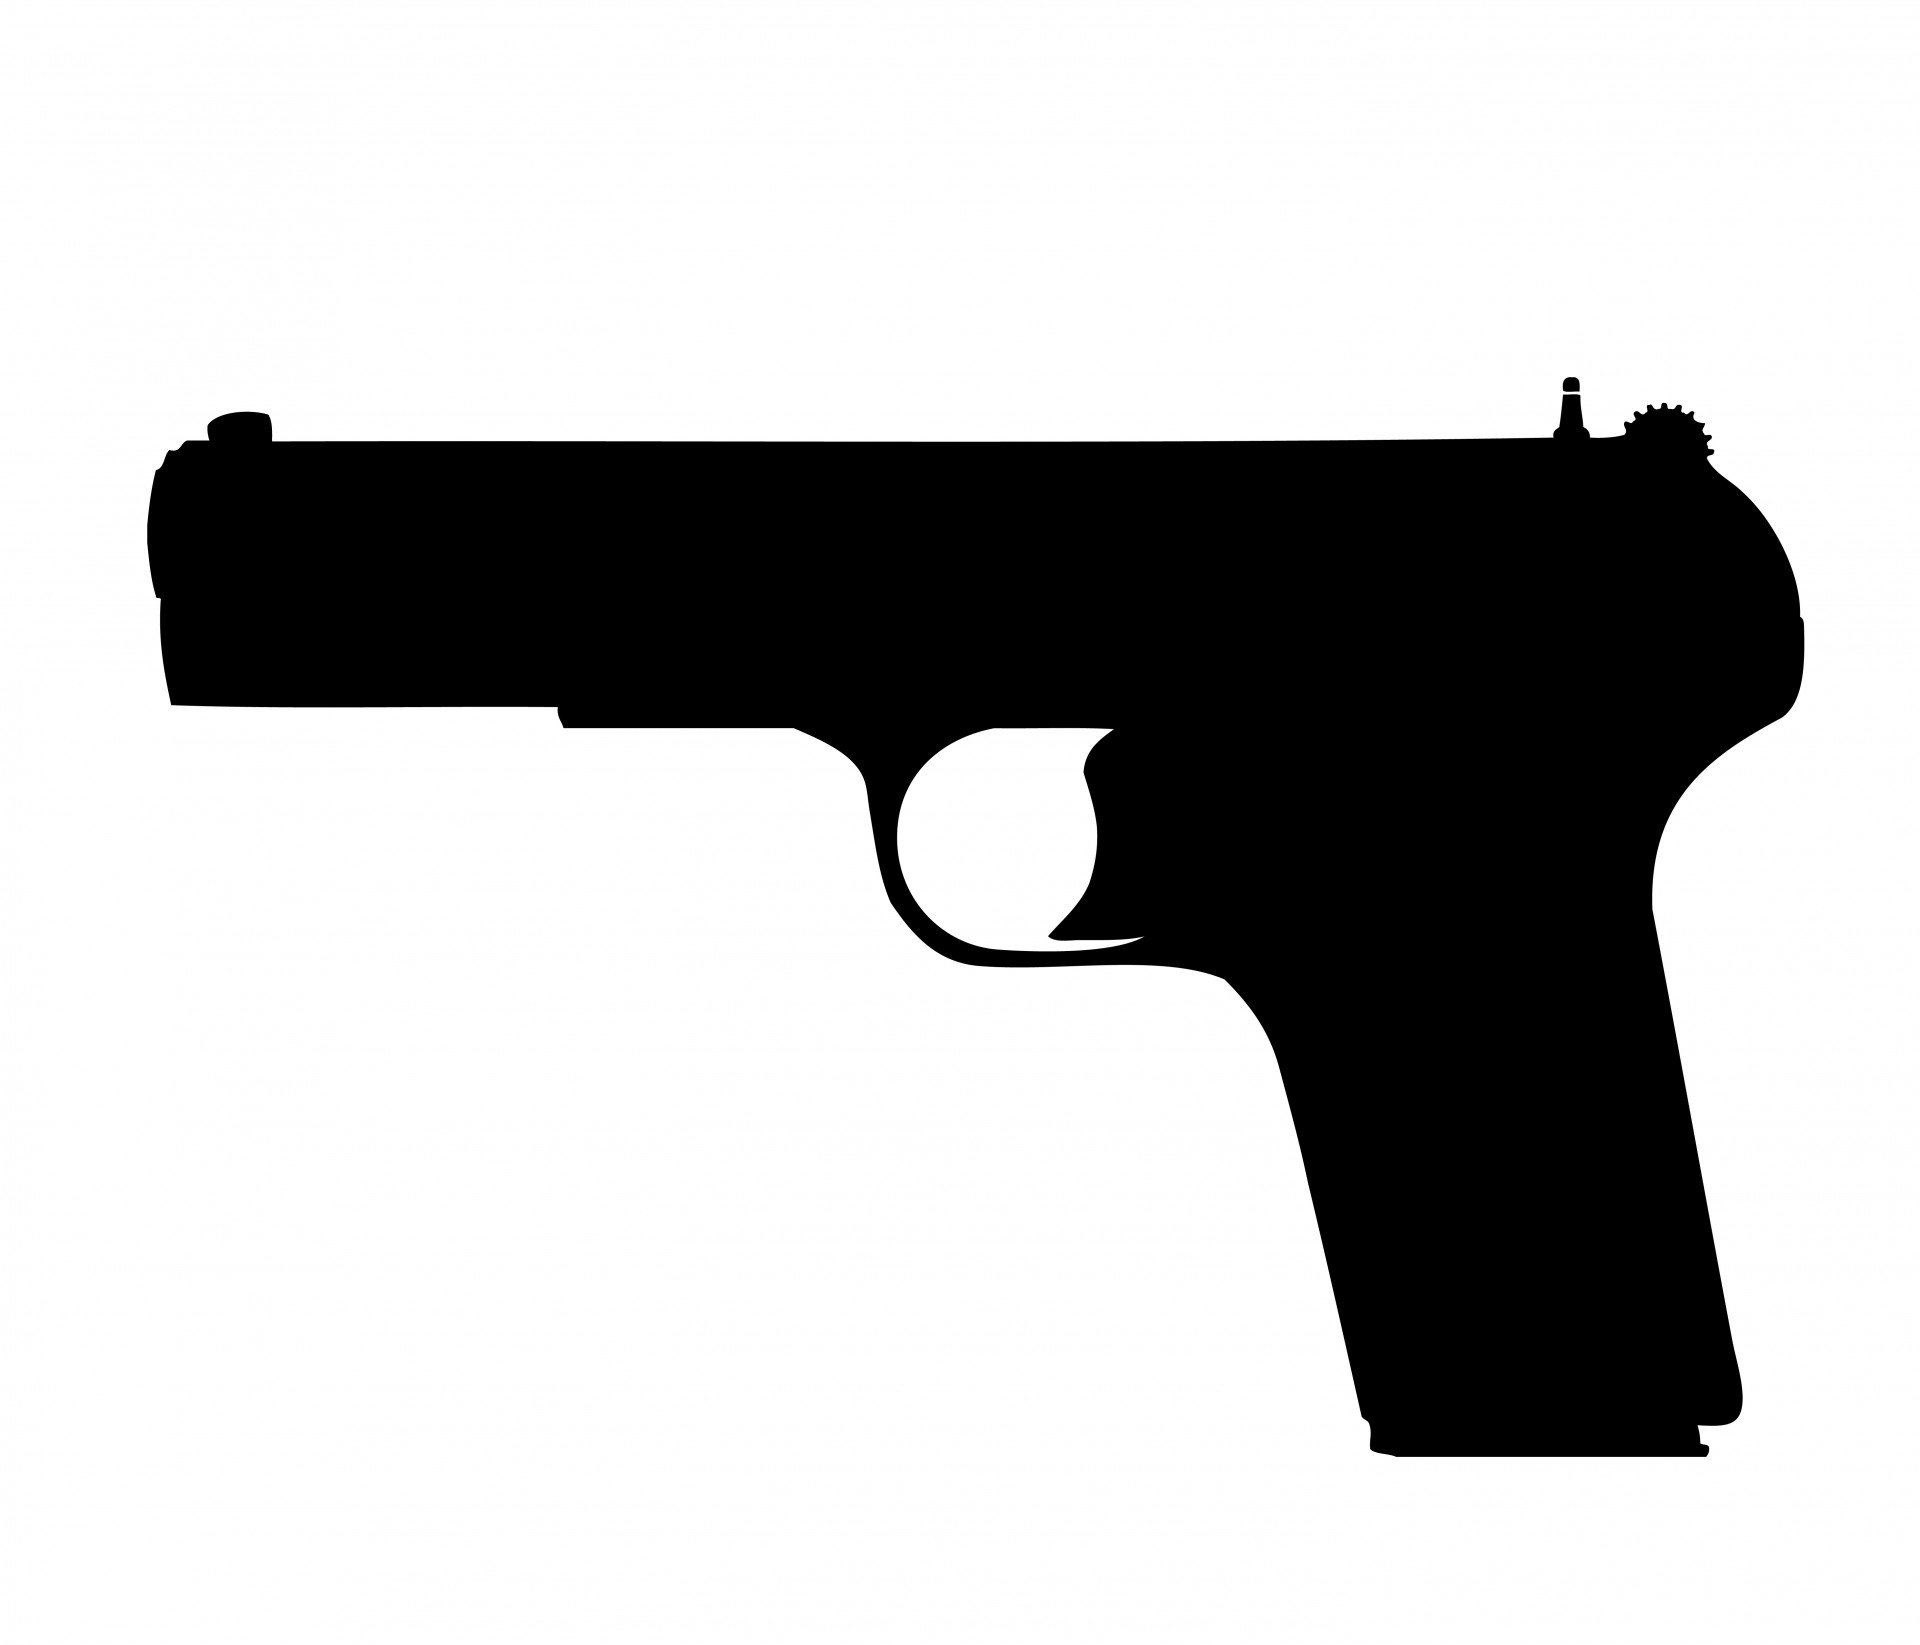 Clipart gun. Pistol free stock photo